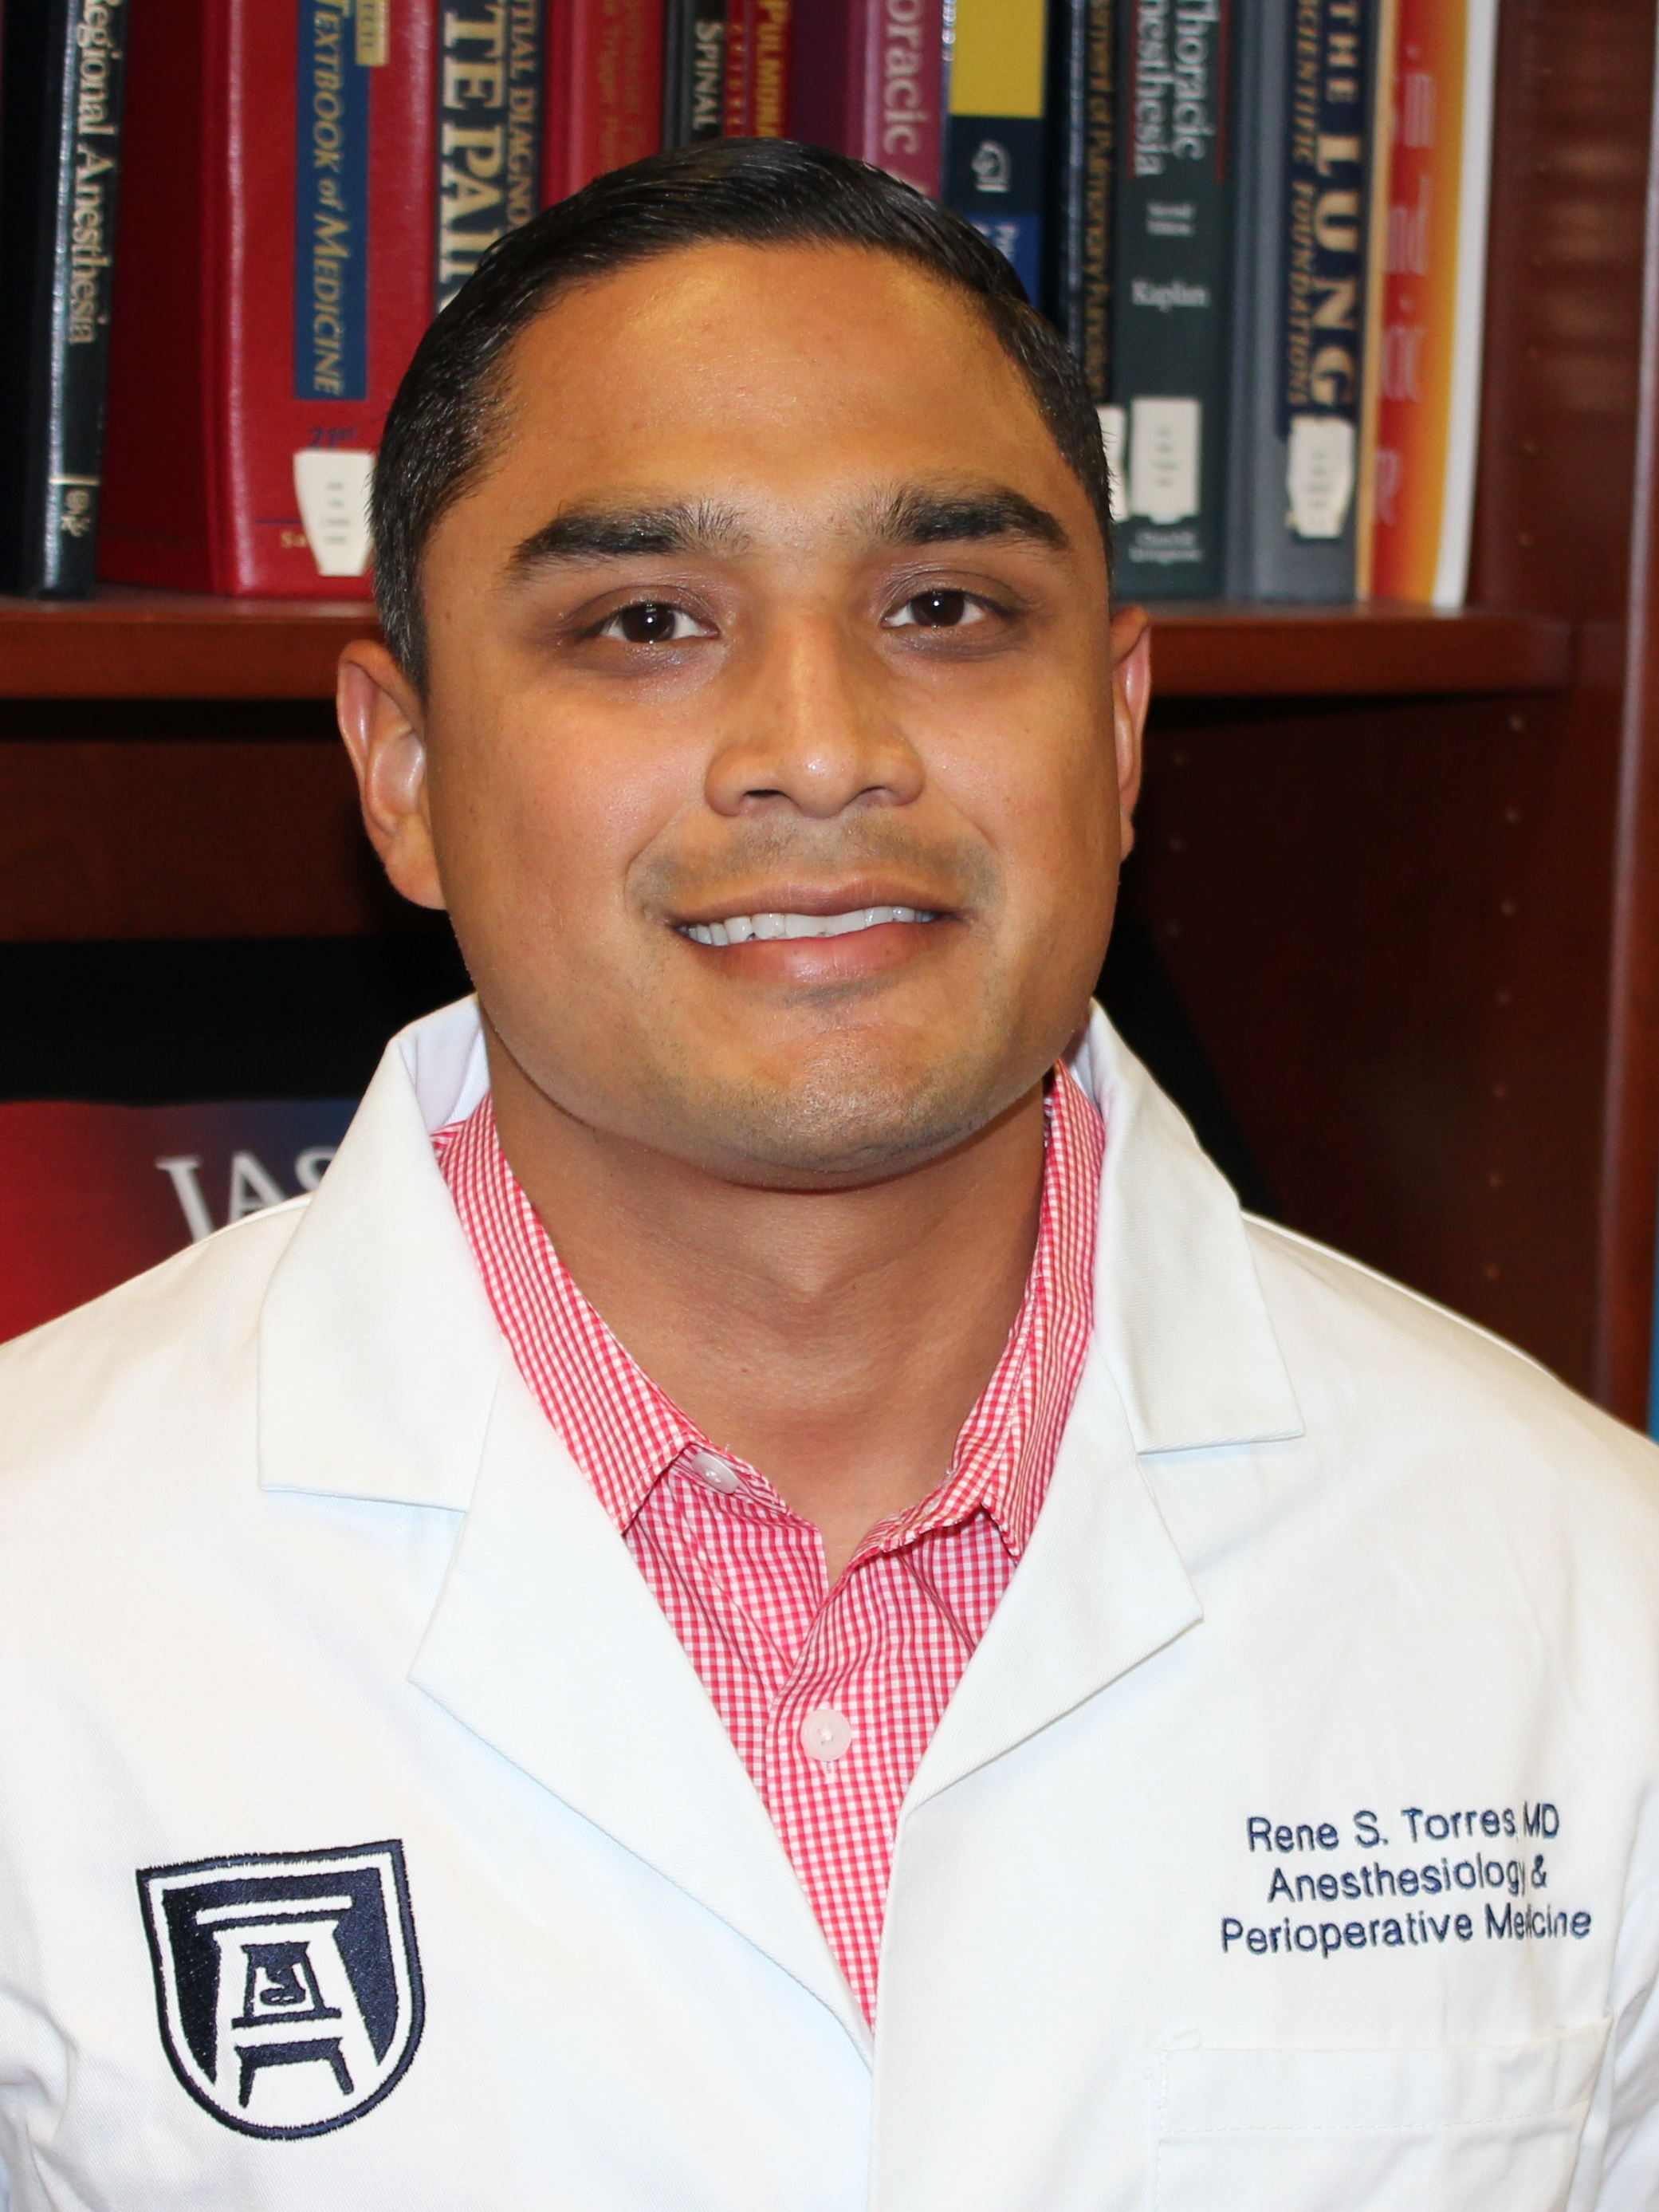 Photo of Rene Torres, MD